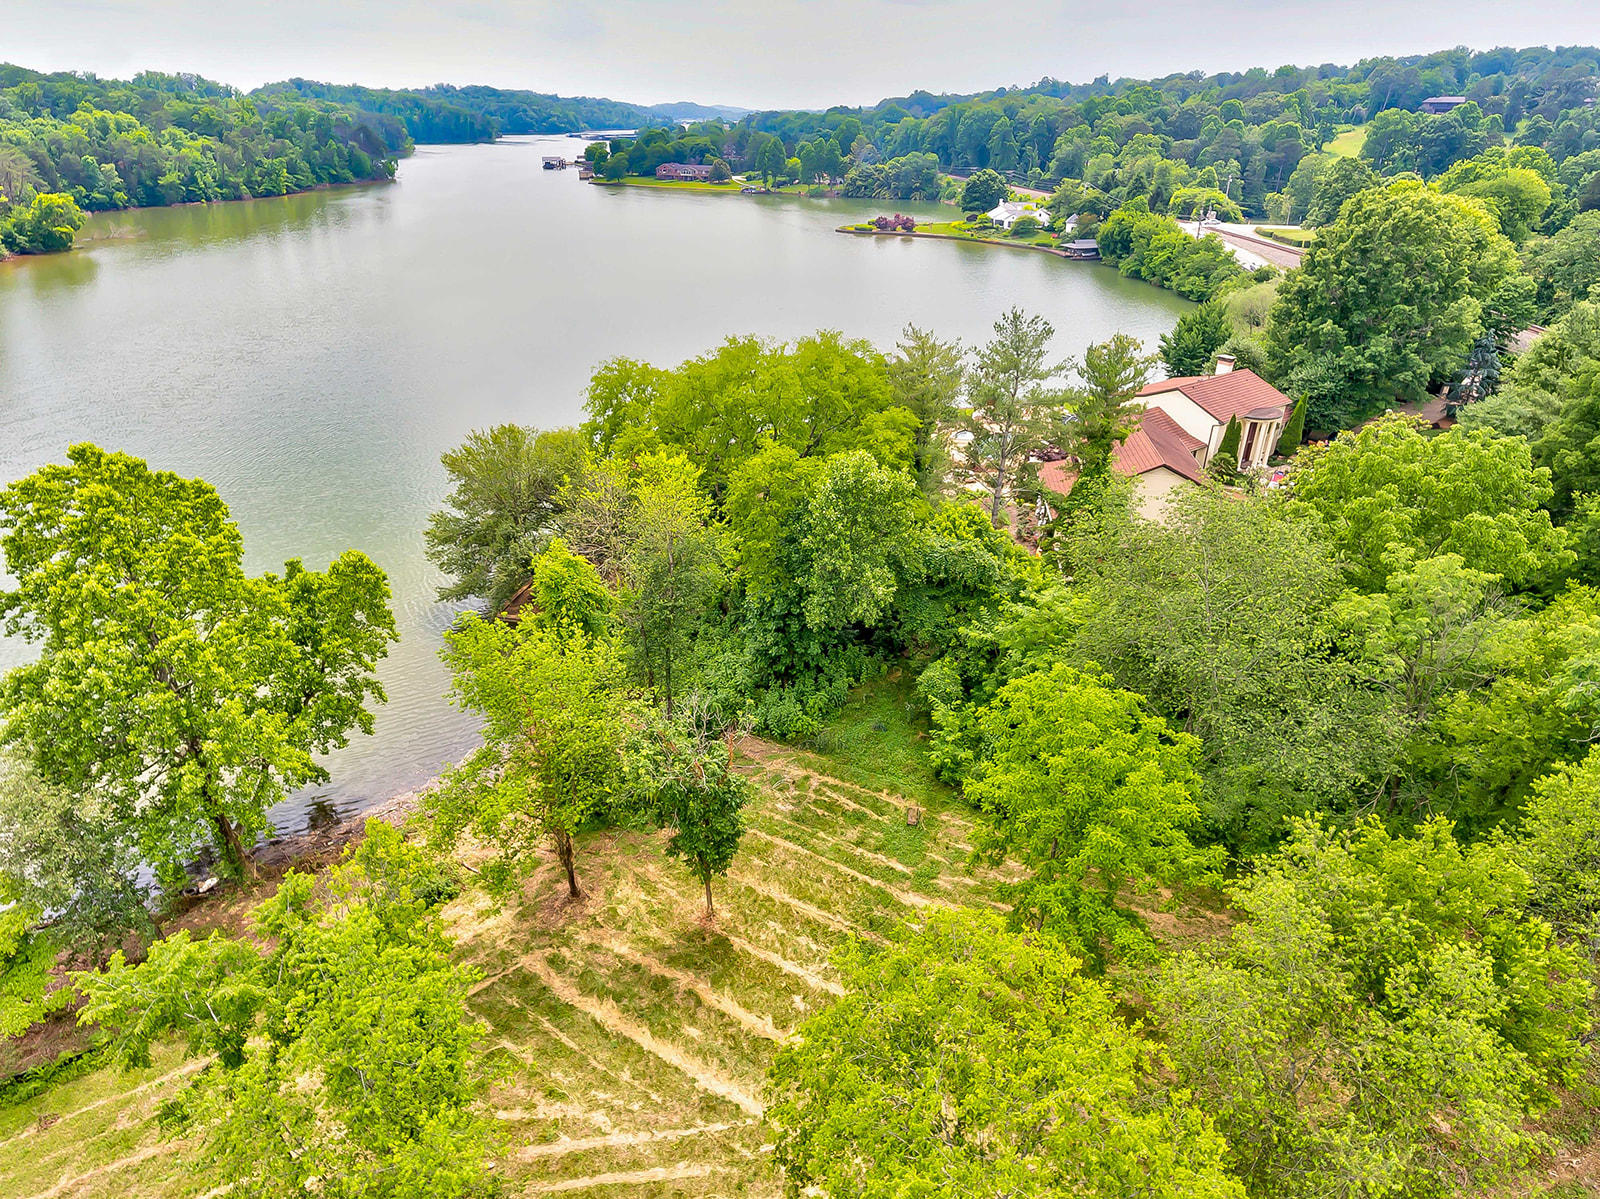 Lot 1 Emory Chruch Rd: